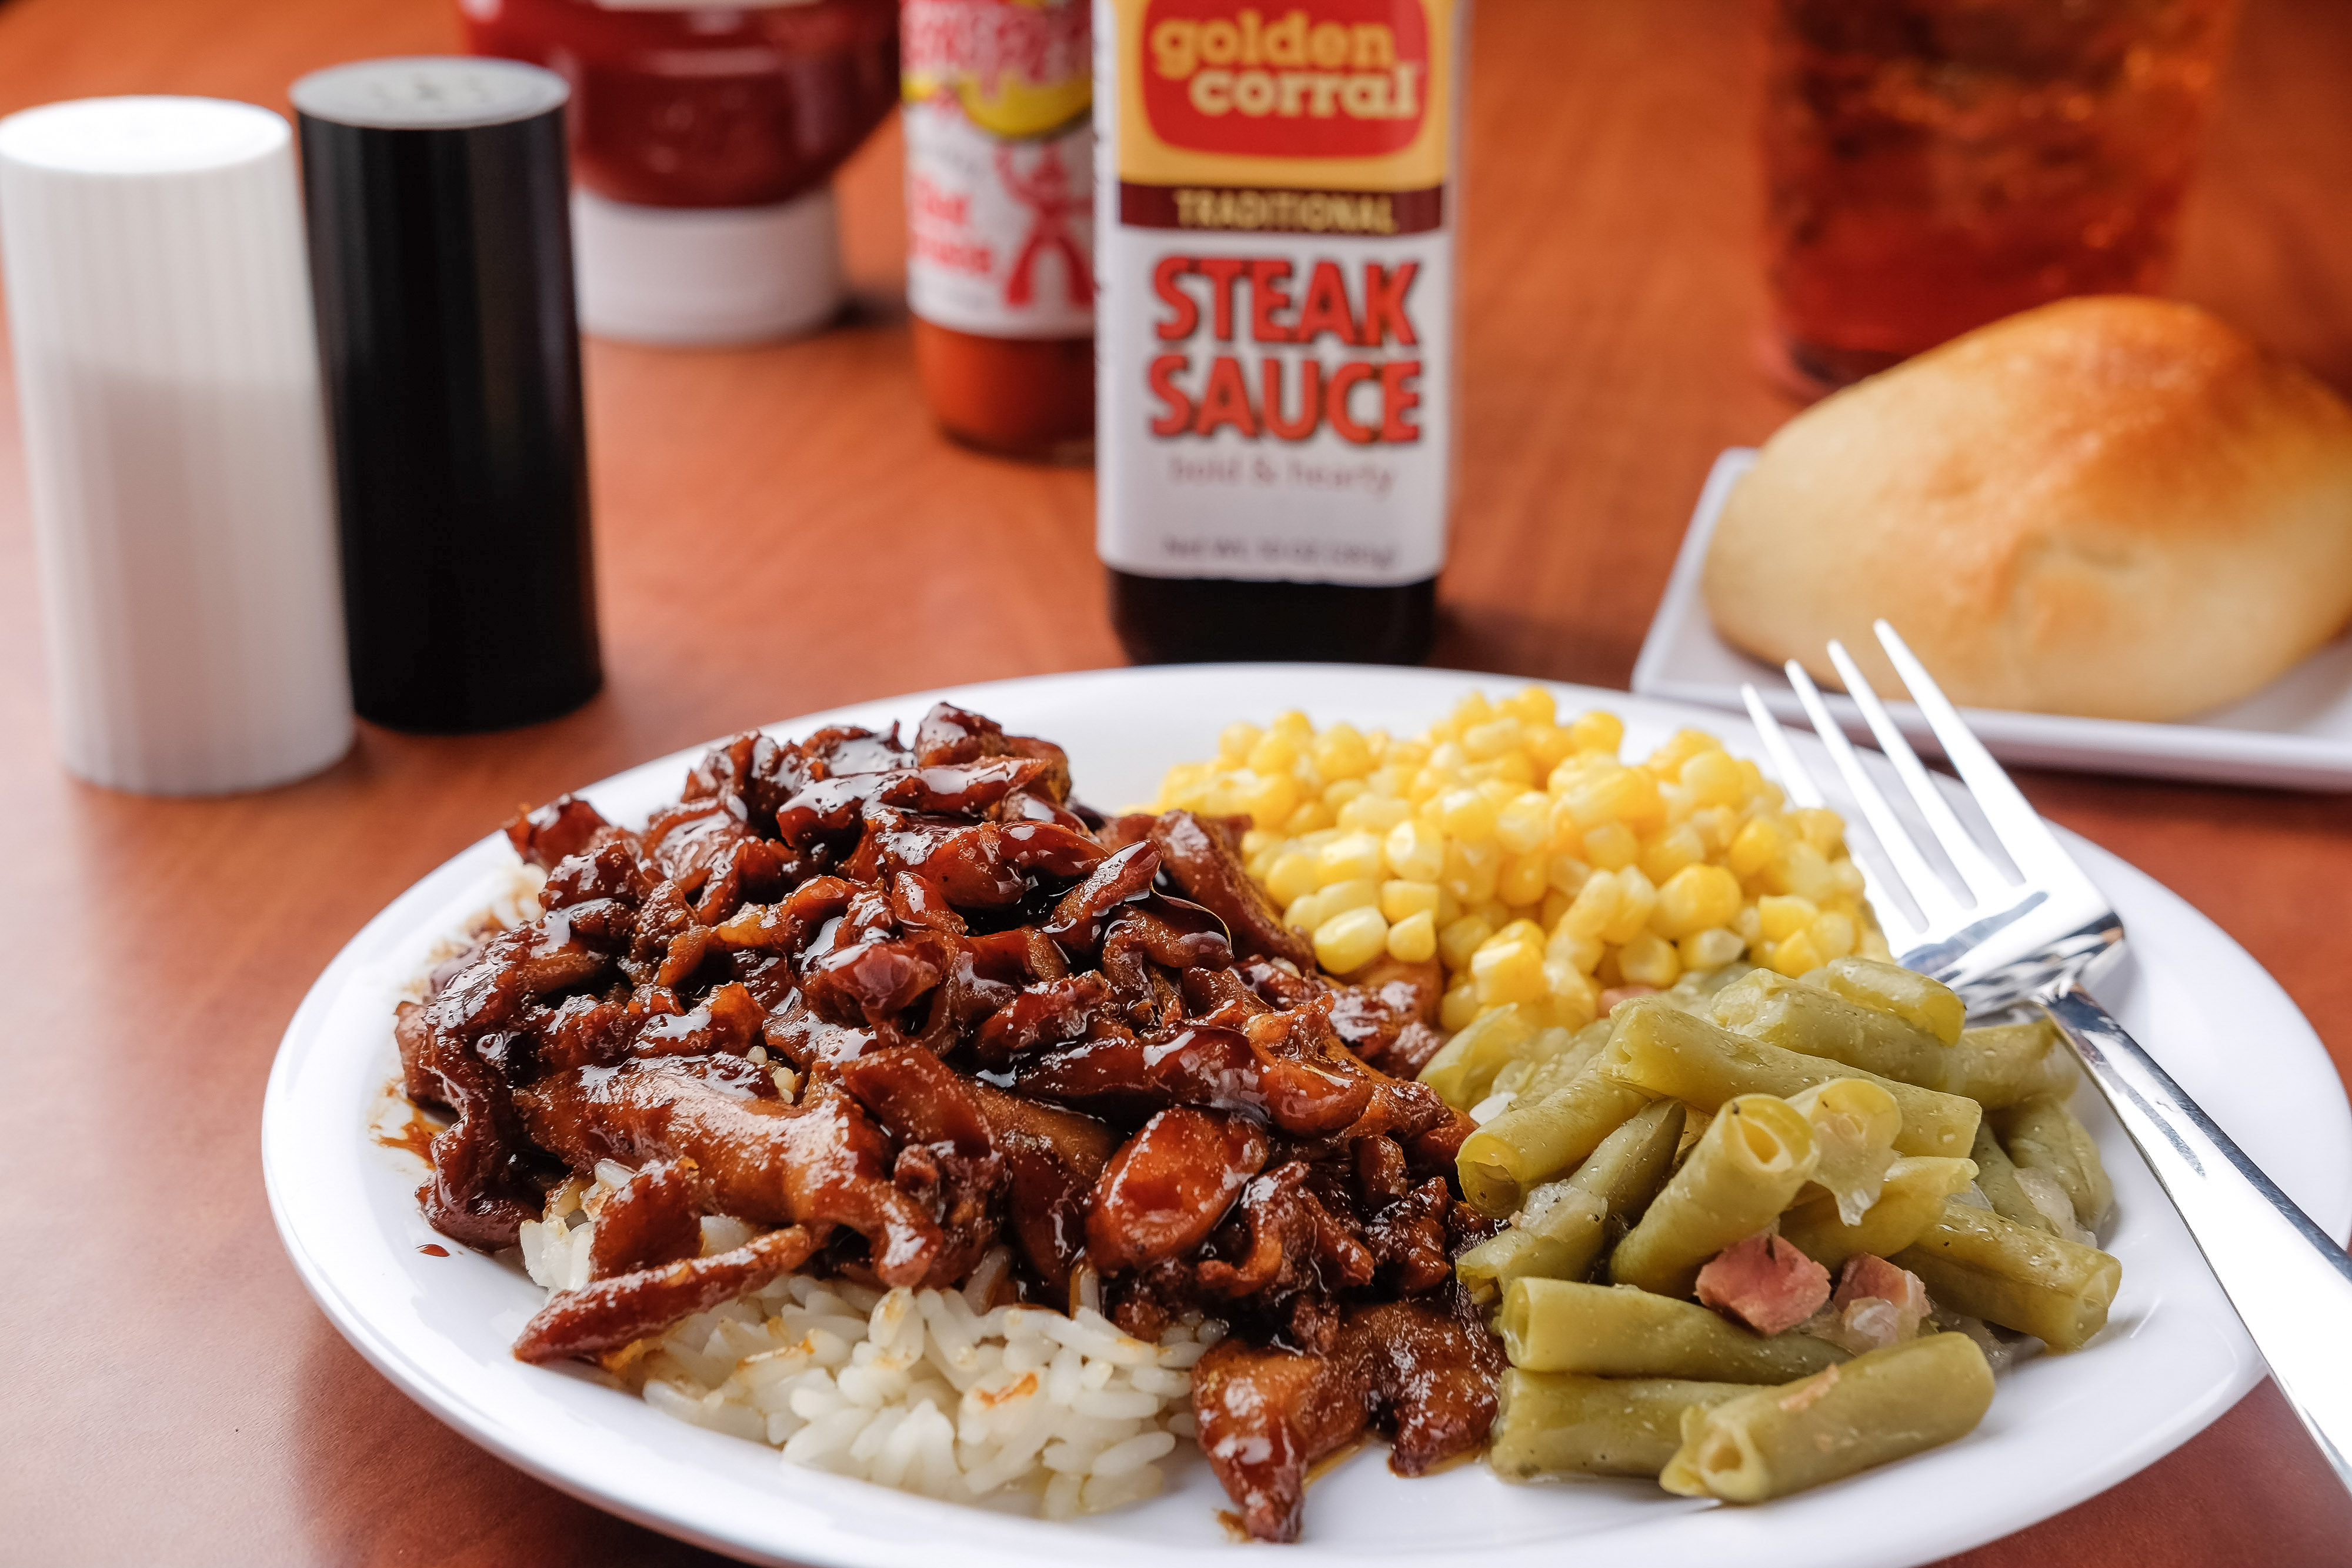 Golden Corral Buffet Grill Hammond Waitr Food Delivery In